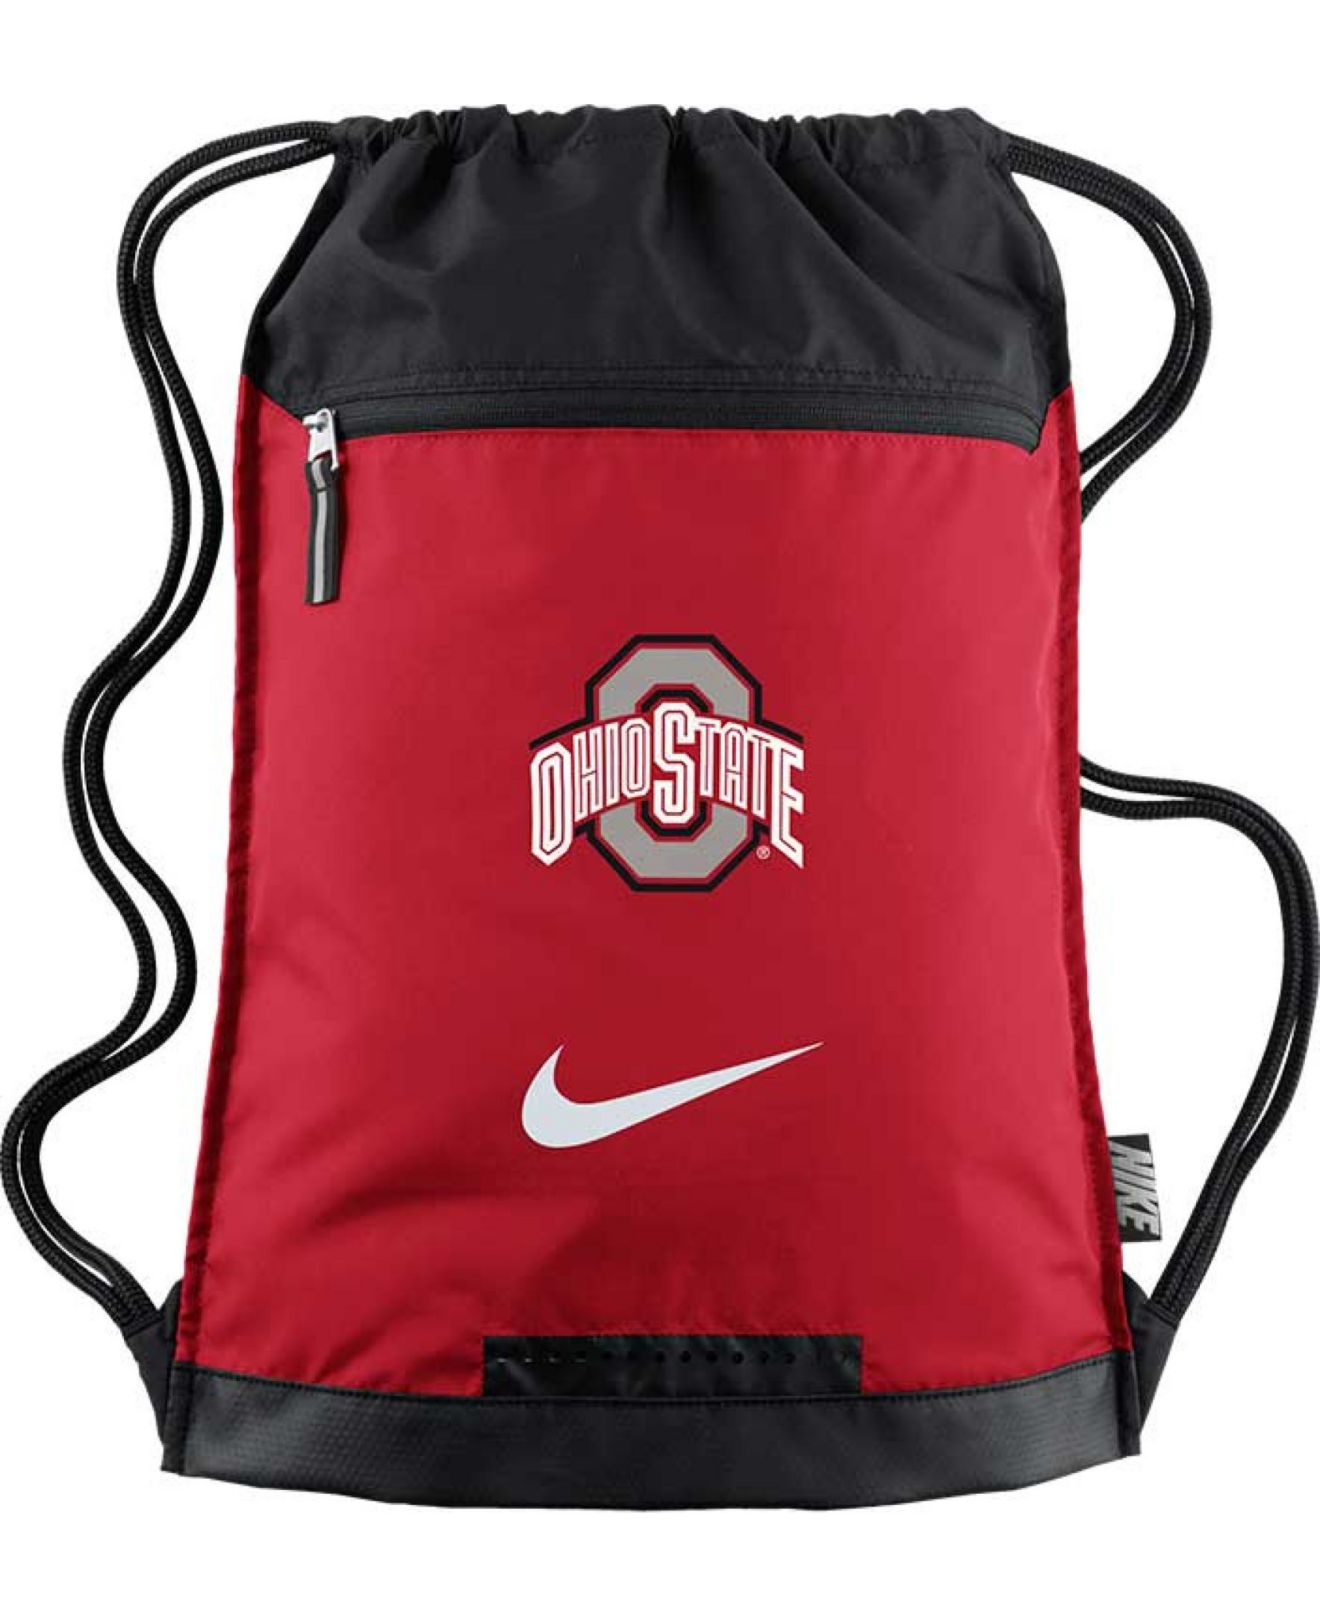 928707163dde Lyst - Nike Ohio State Buckeyes Training Gym Bag in Red for Men